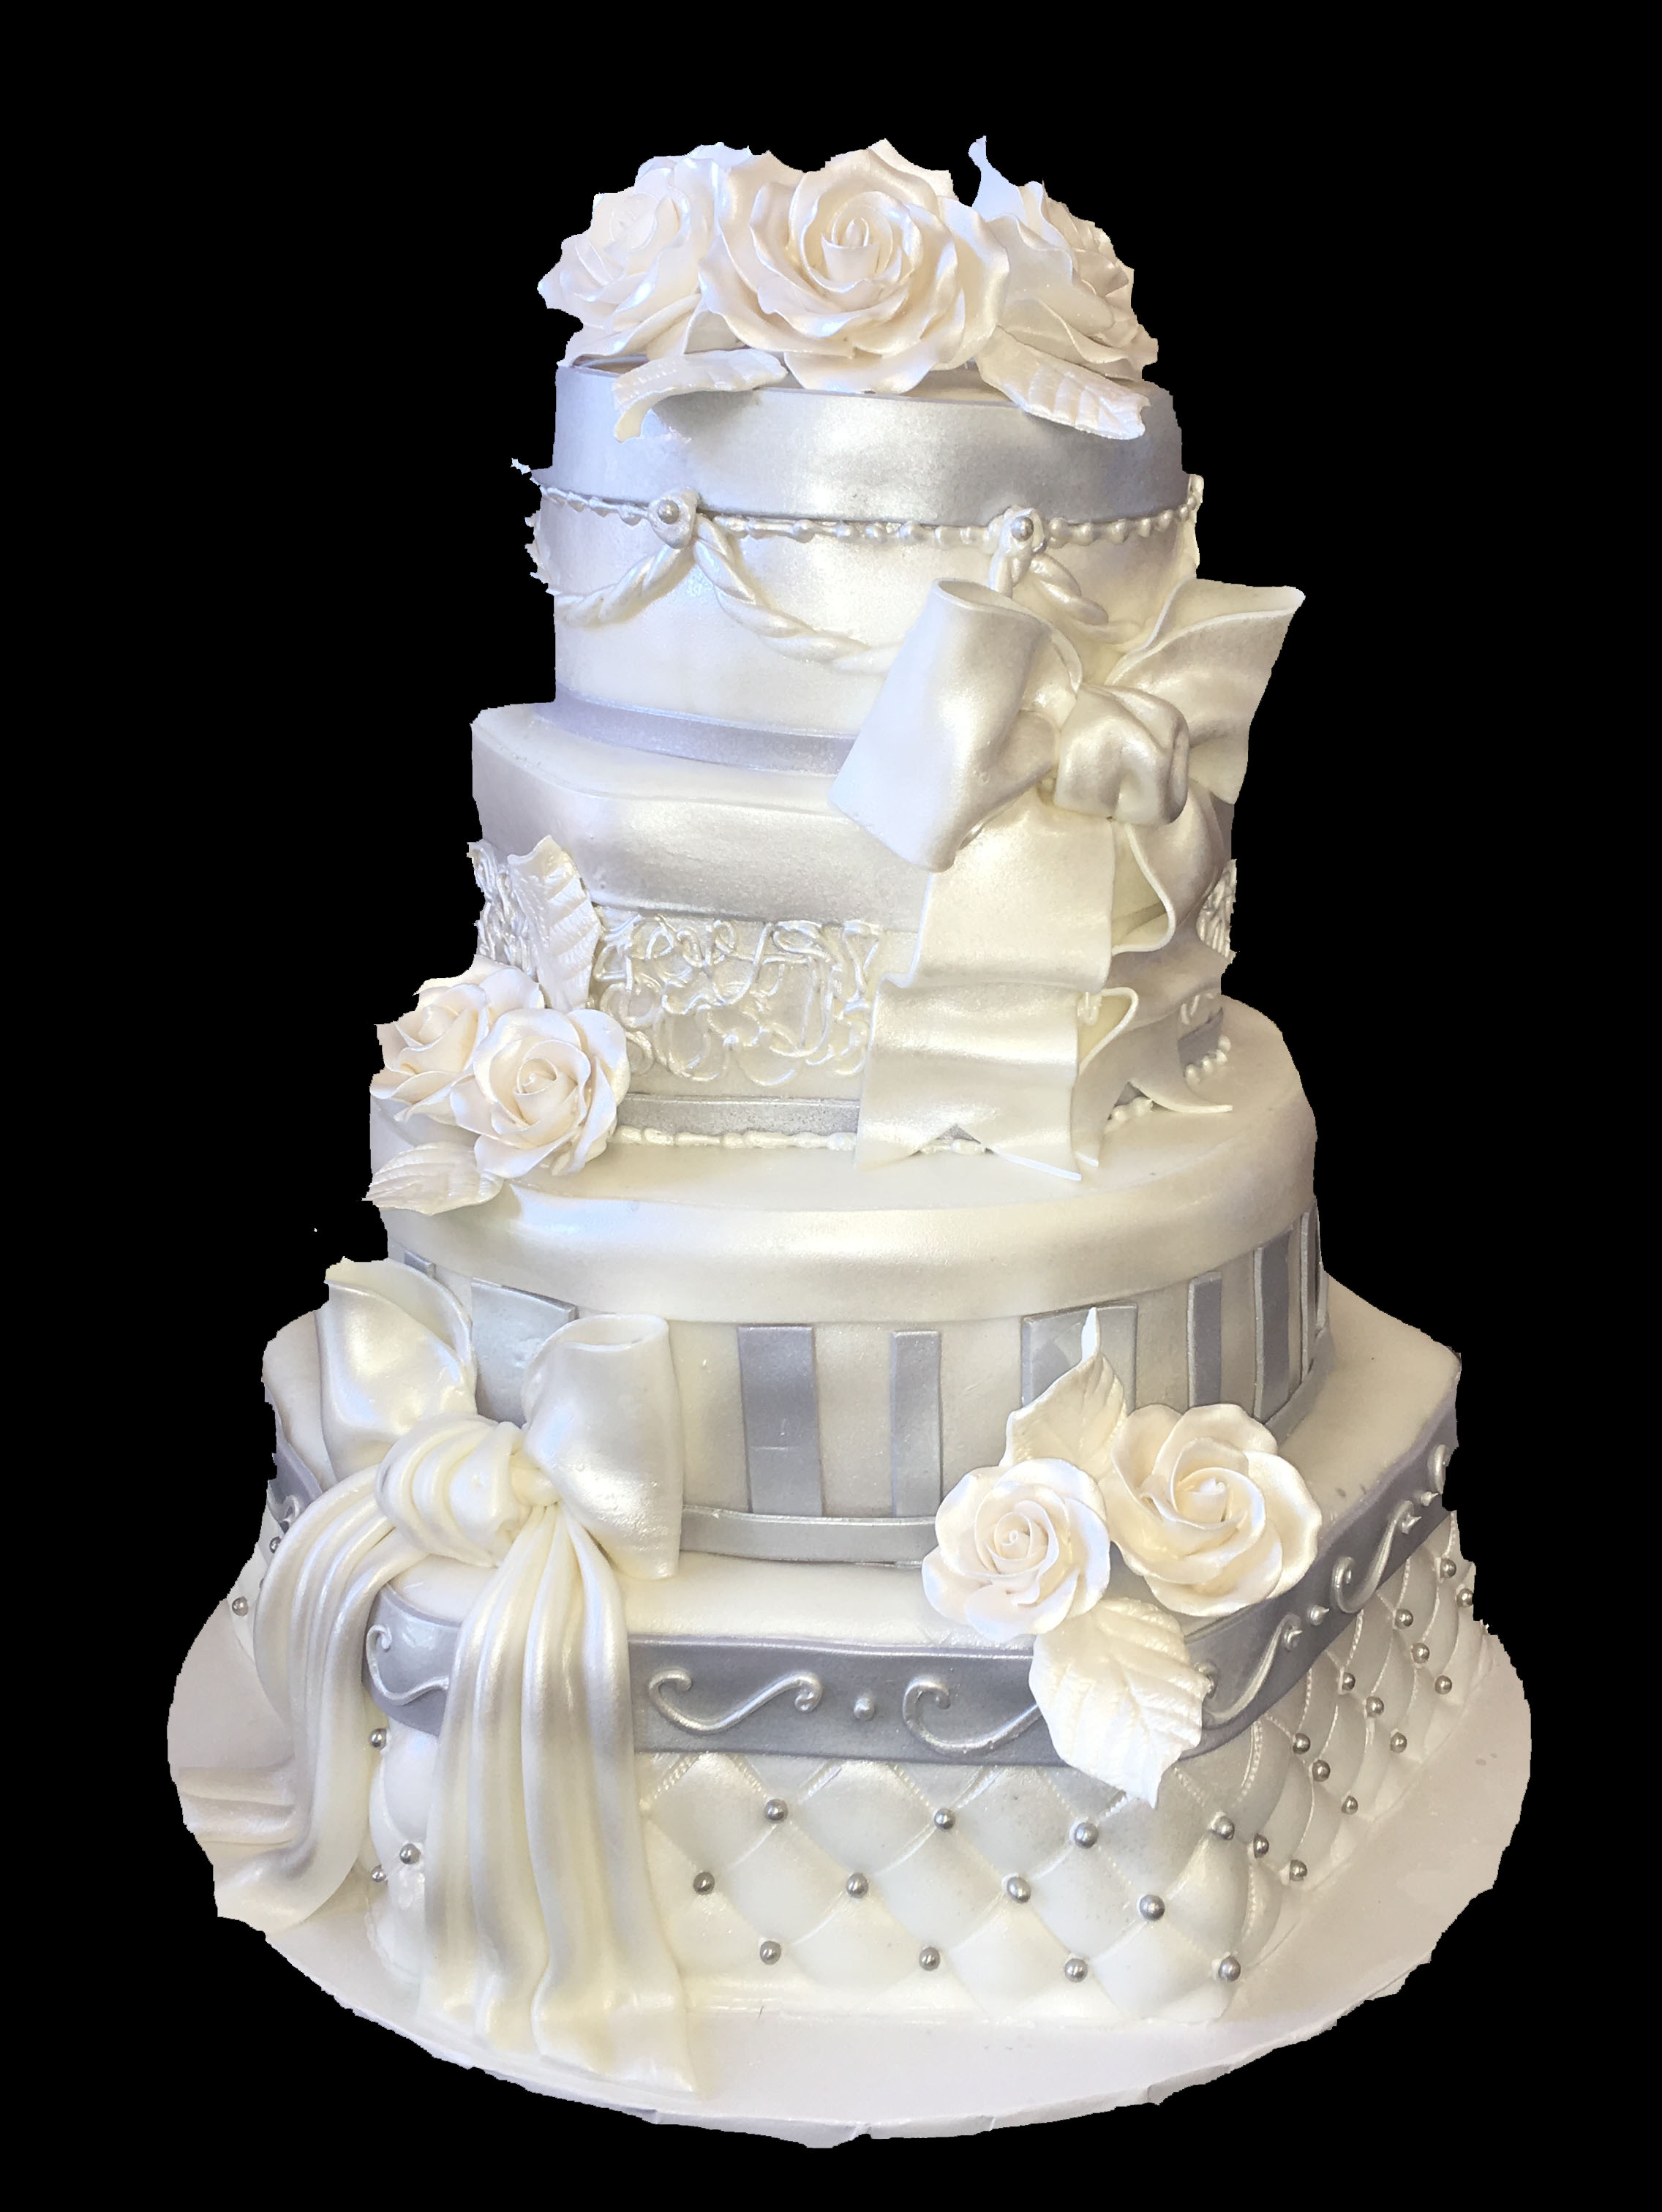 Hexagon. Quilted. Stripes. 2 Tone Fondant. Bow. Roping. Pearlized. Gum Paste Flowers.jpg